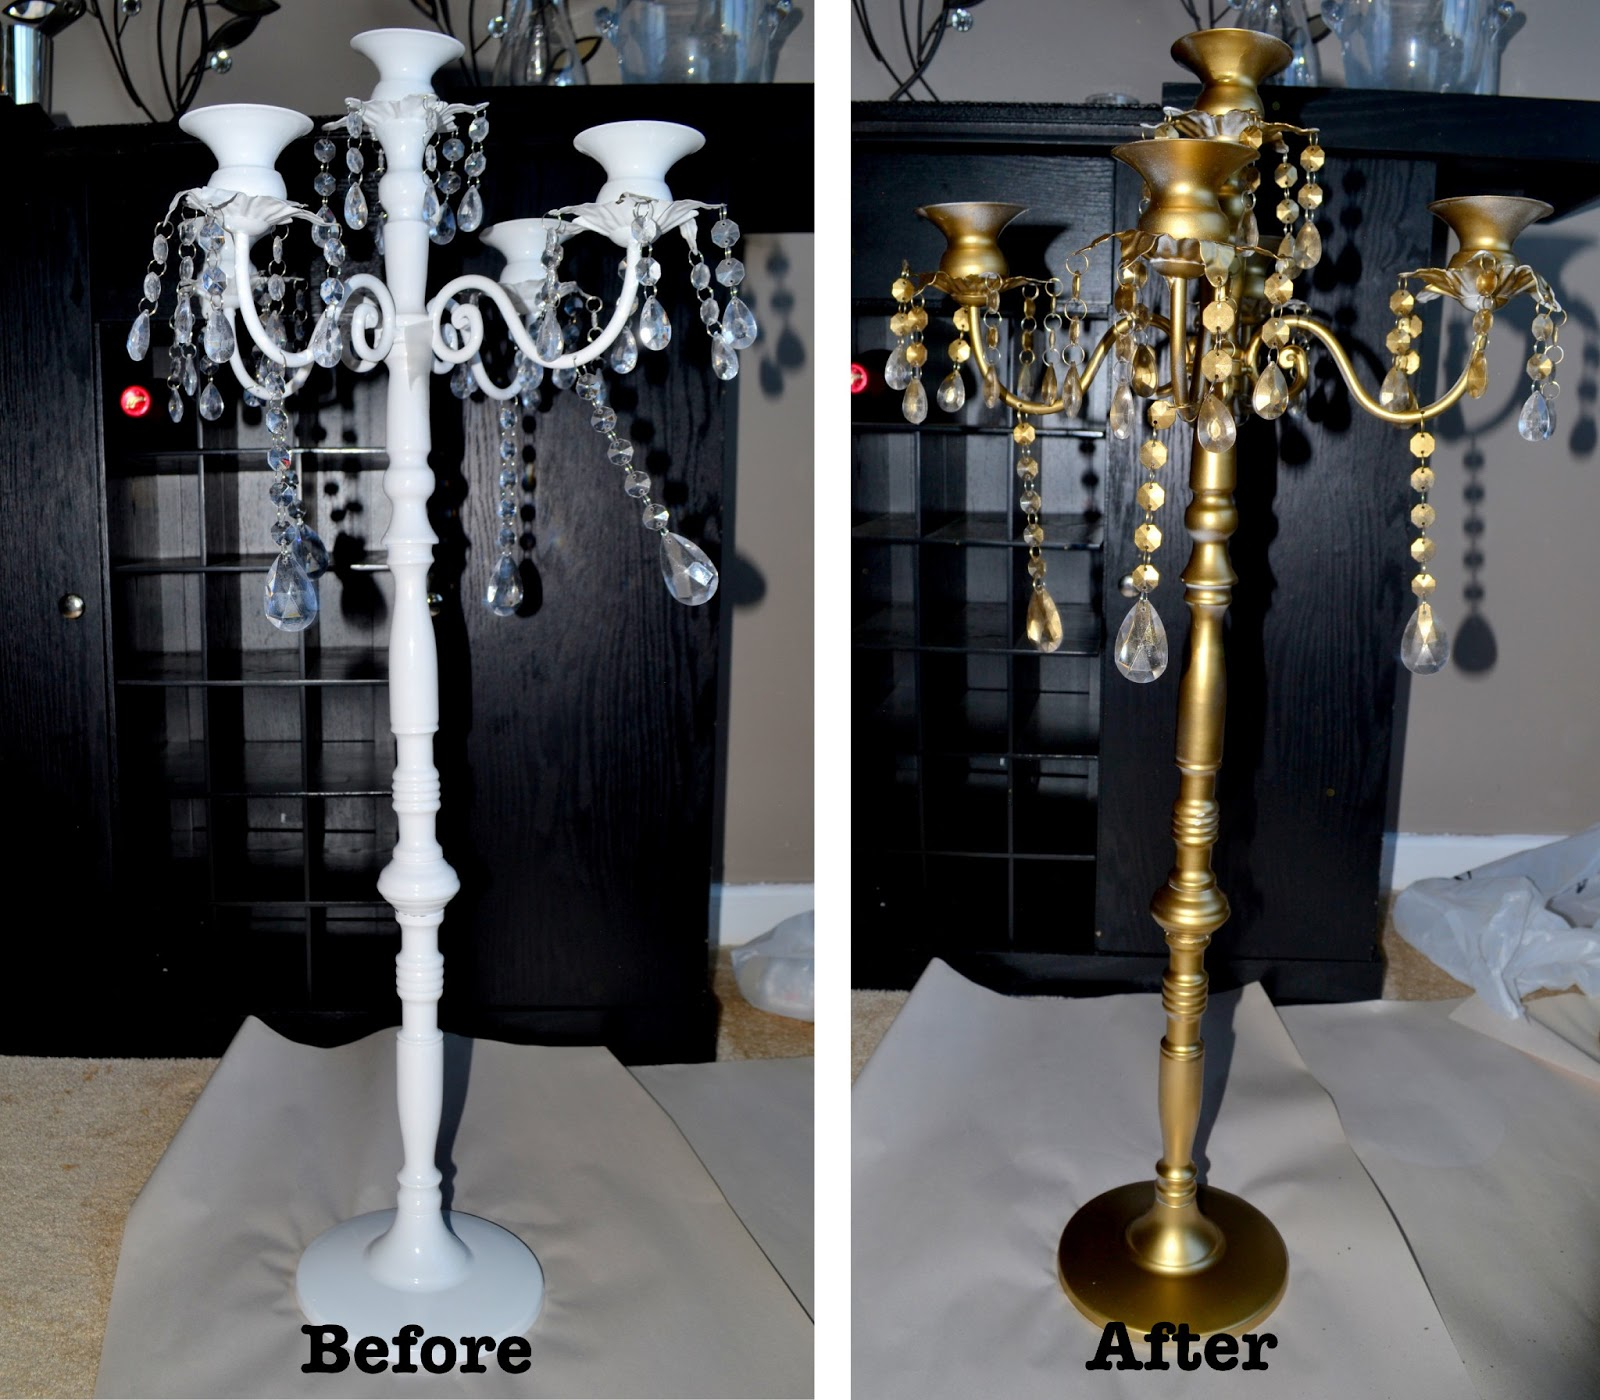 The rose colored aisle diy how to make your own gold candelabra - Build a chandelier ...